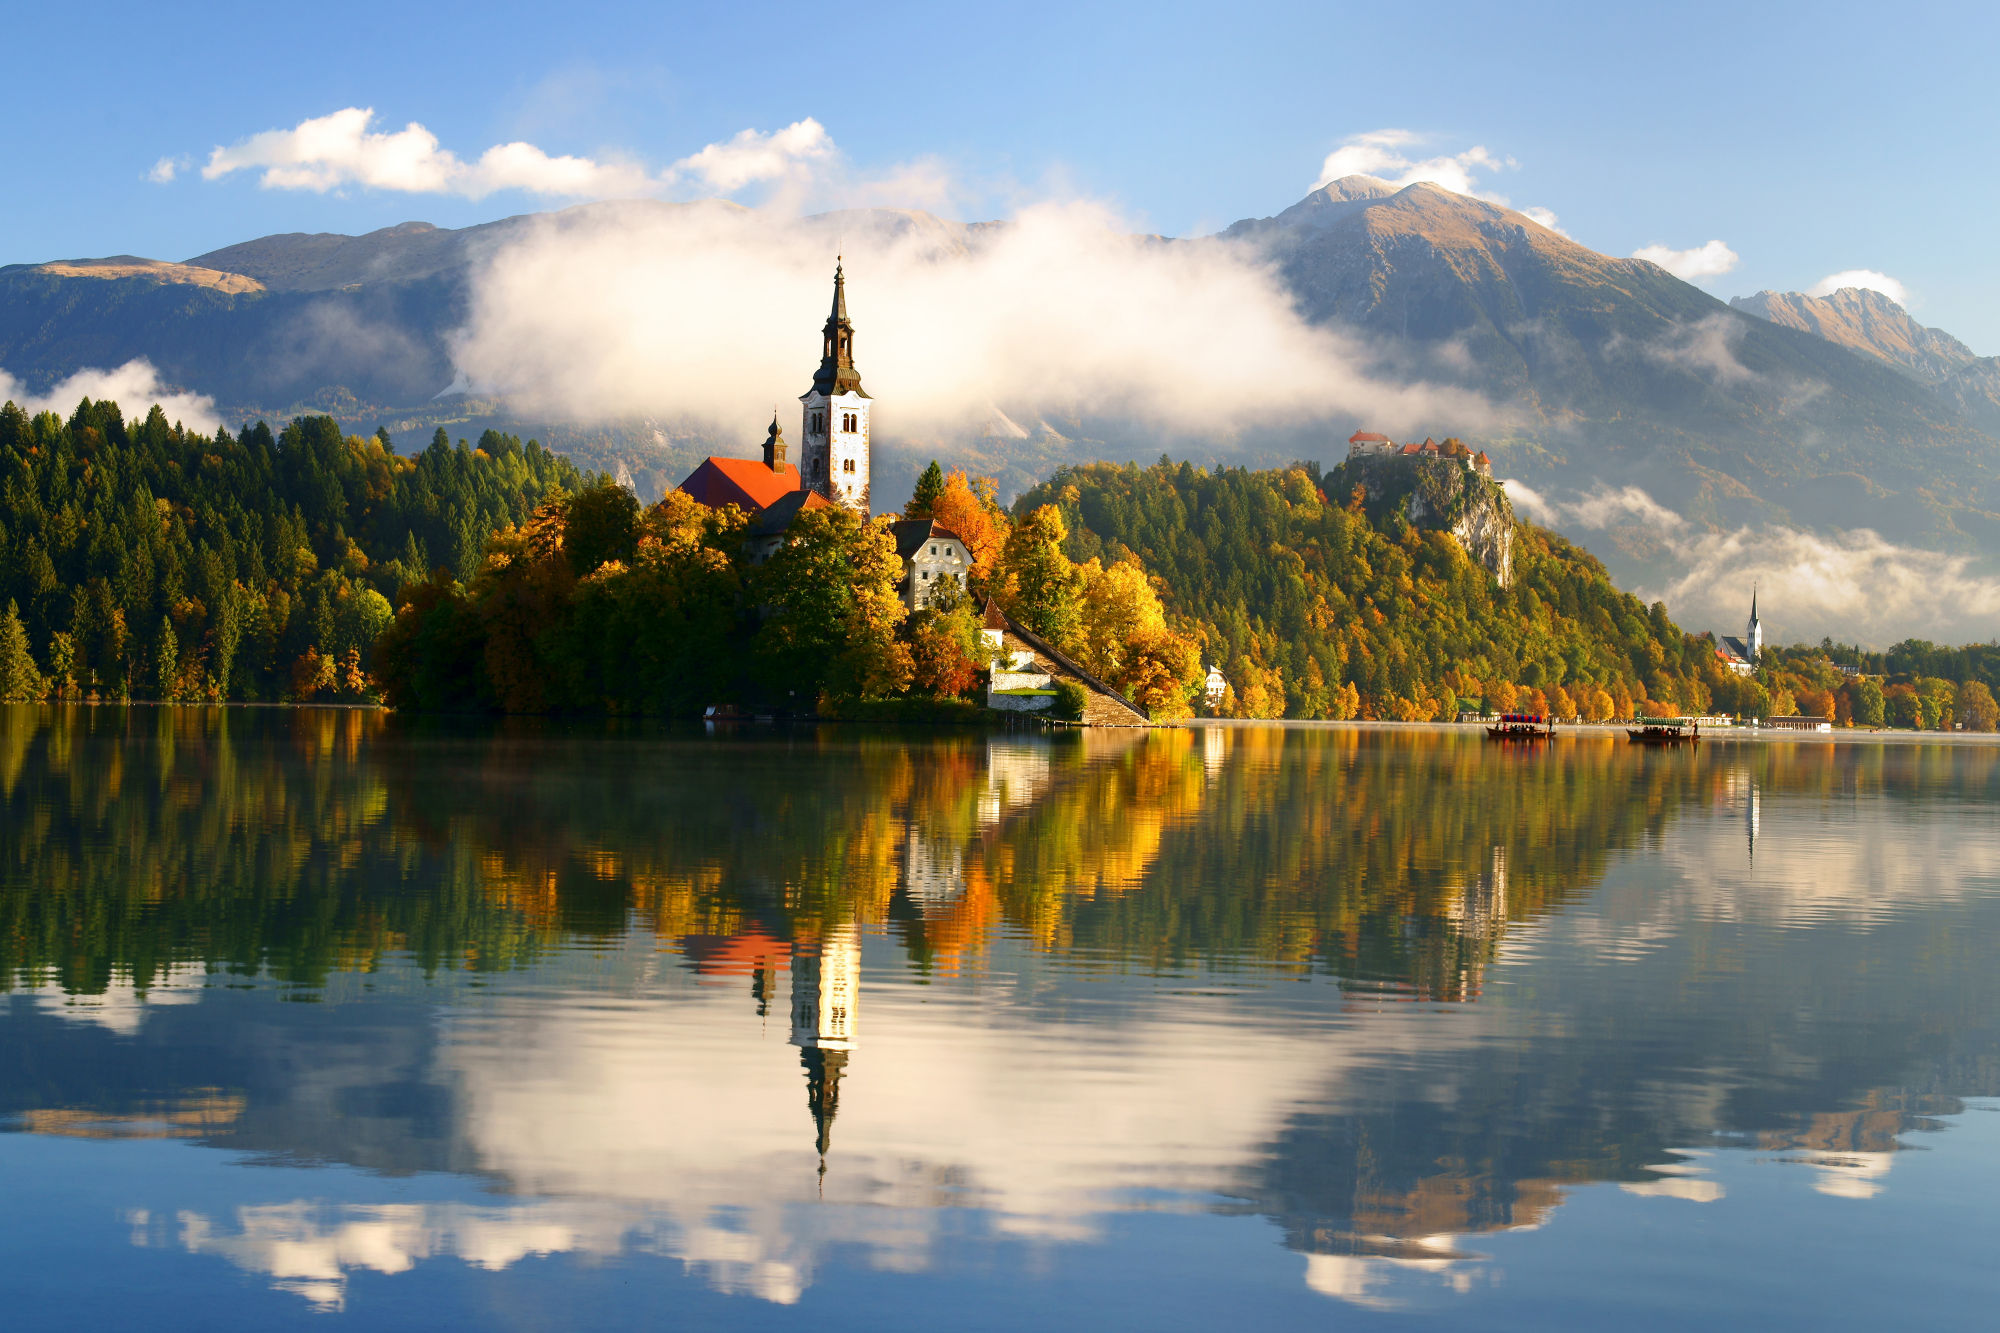 Lake Bled with its island and castle